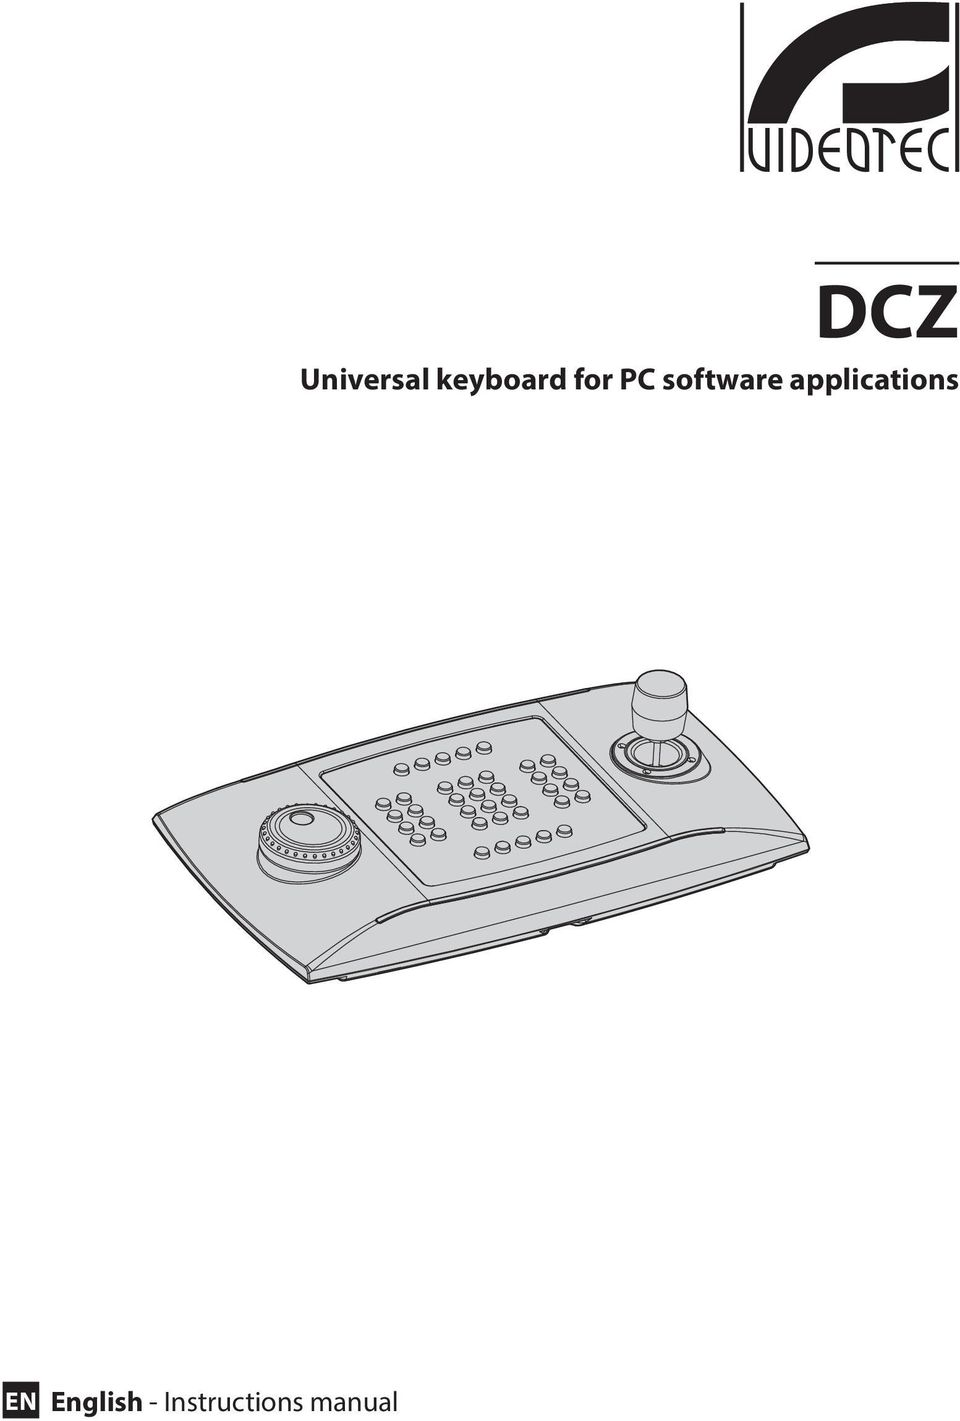 DCZ Universal